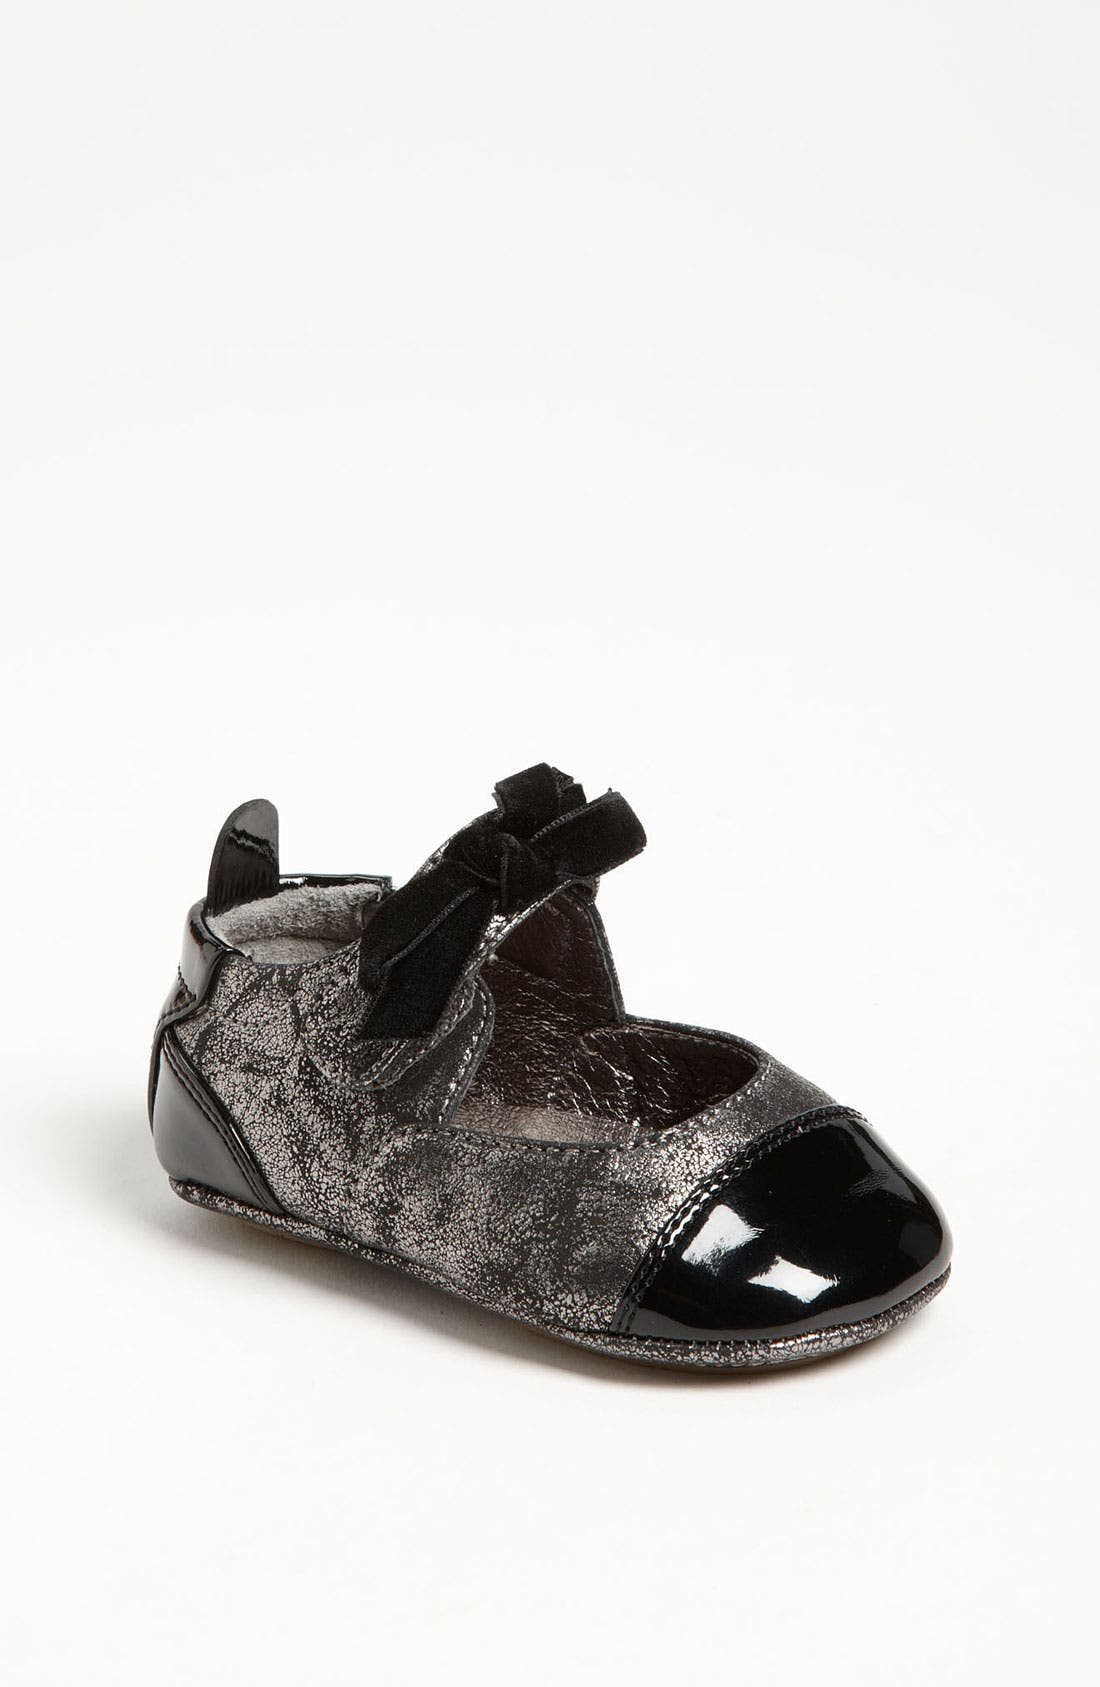 Main Image - Cole Haan 'Mini Cap Toe' Leather Crib Shoe (Baby)